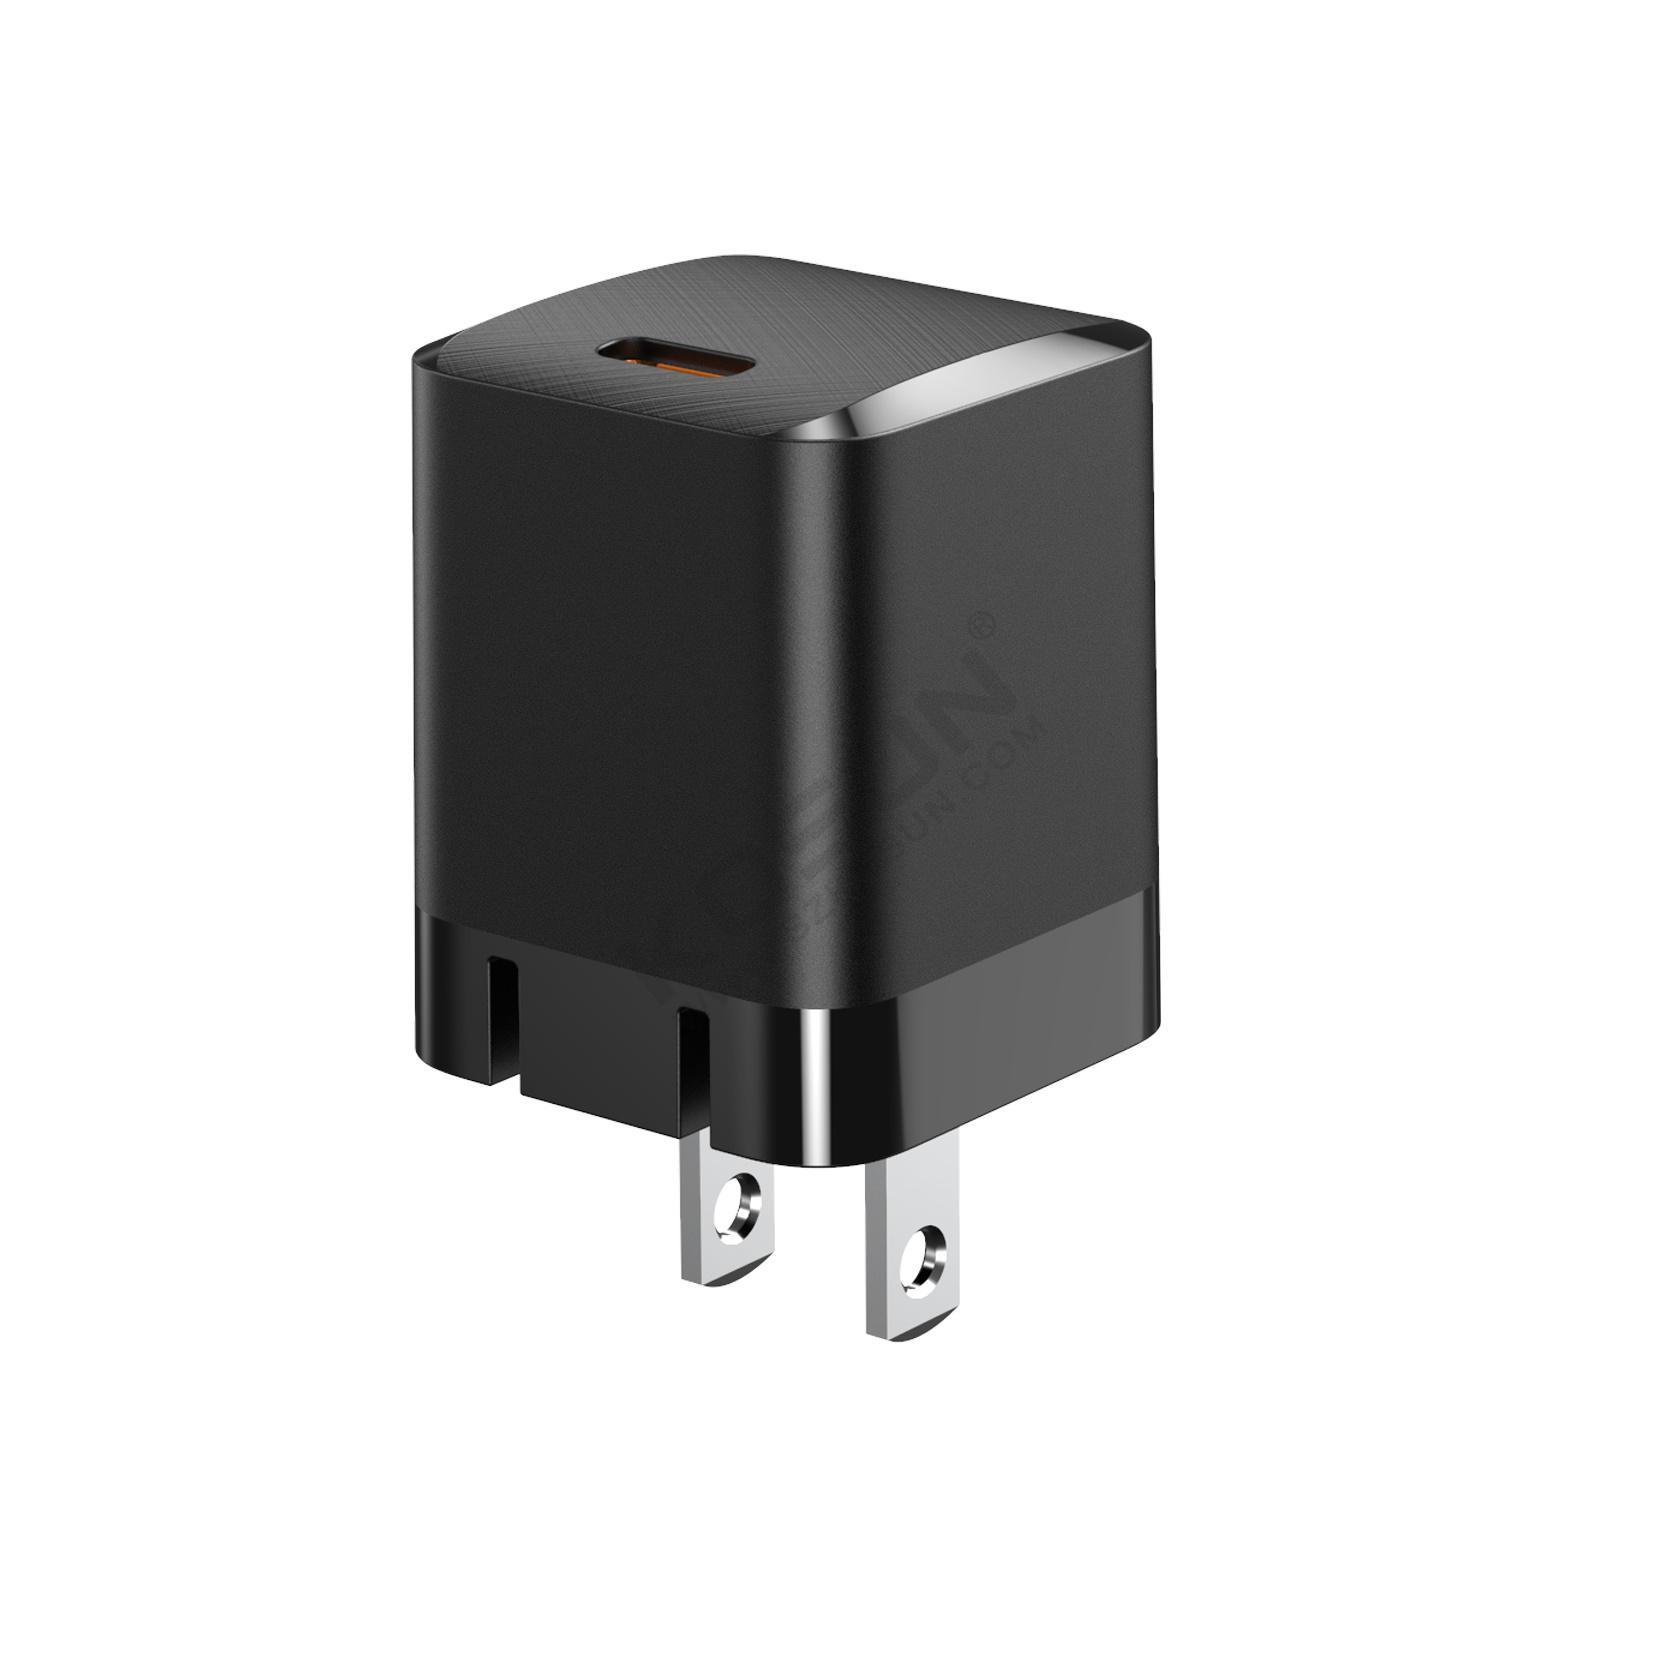 PD30W Single Port GaN Wall Charger